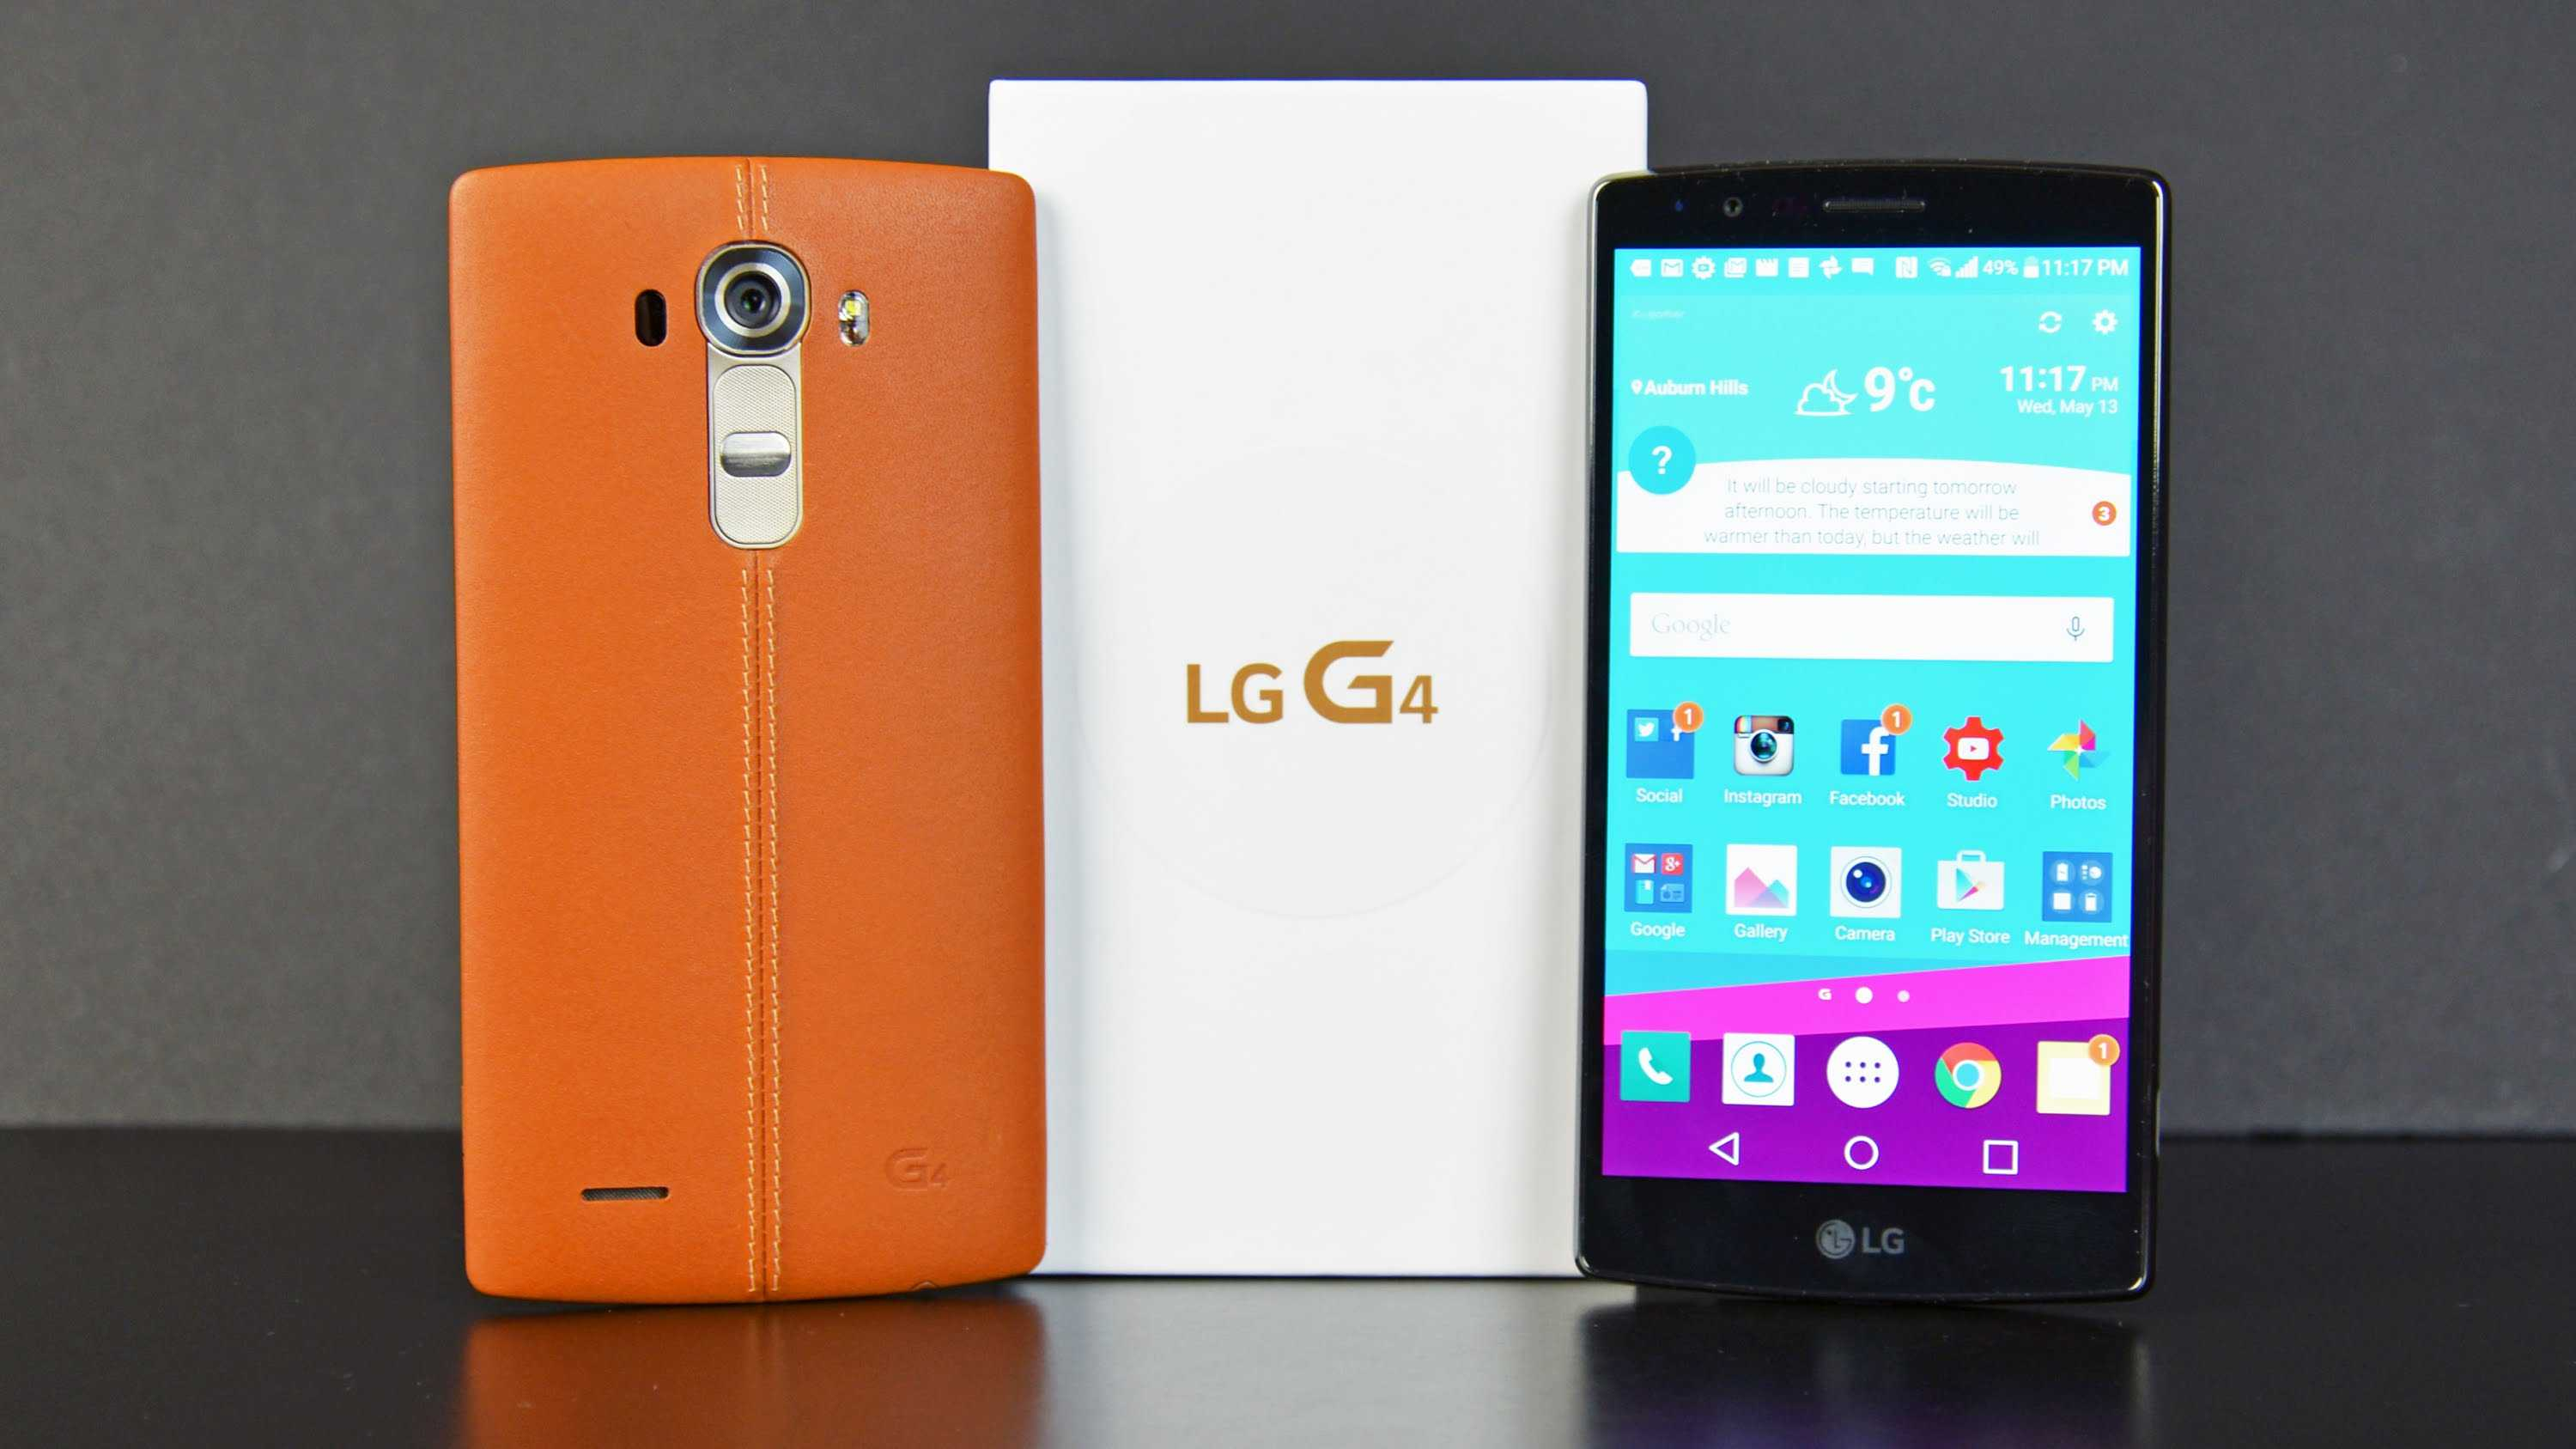 Update] Download Android 7 1 Nougat Update for LG G4 (F500K